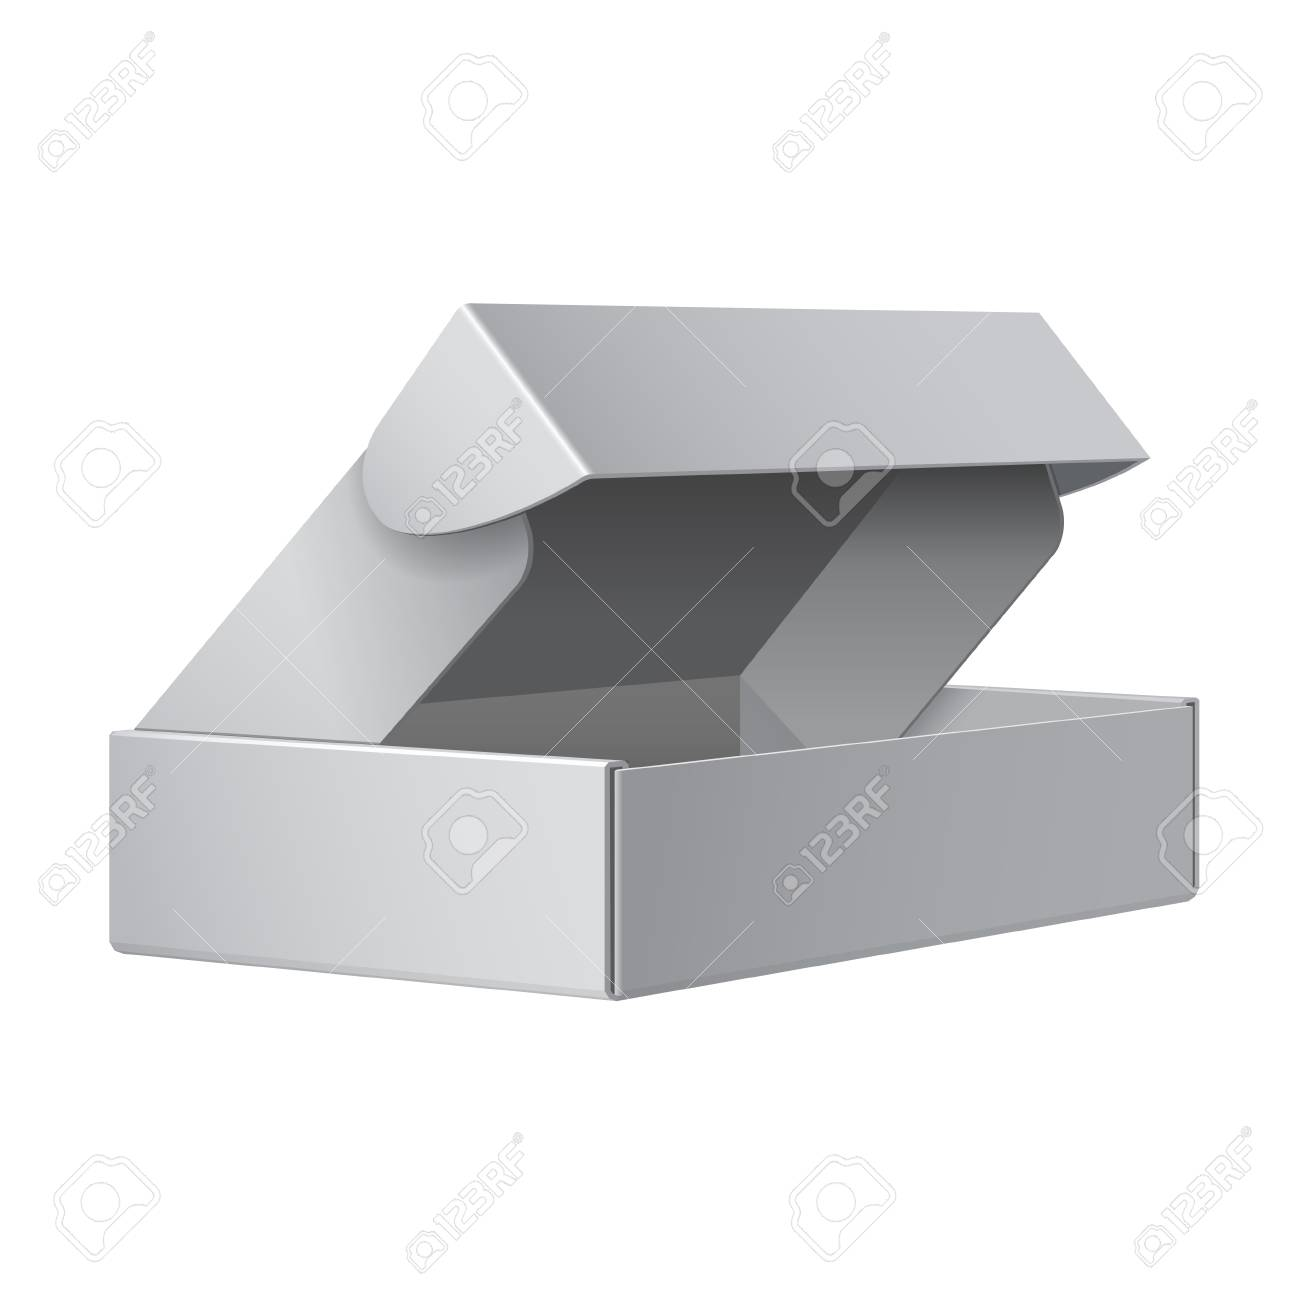 White Package Box Opened  For electronic device Stock Vector - 16358694